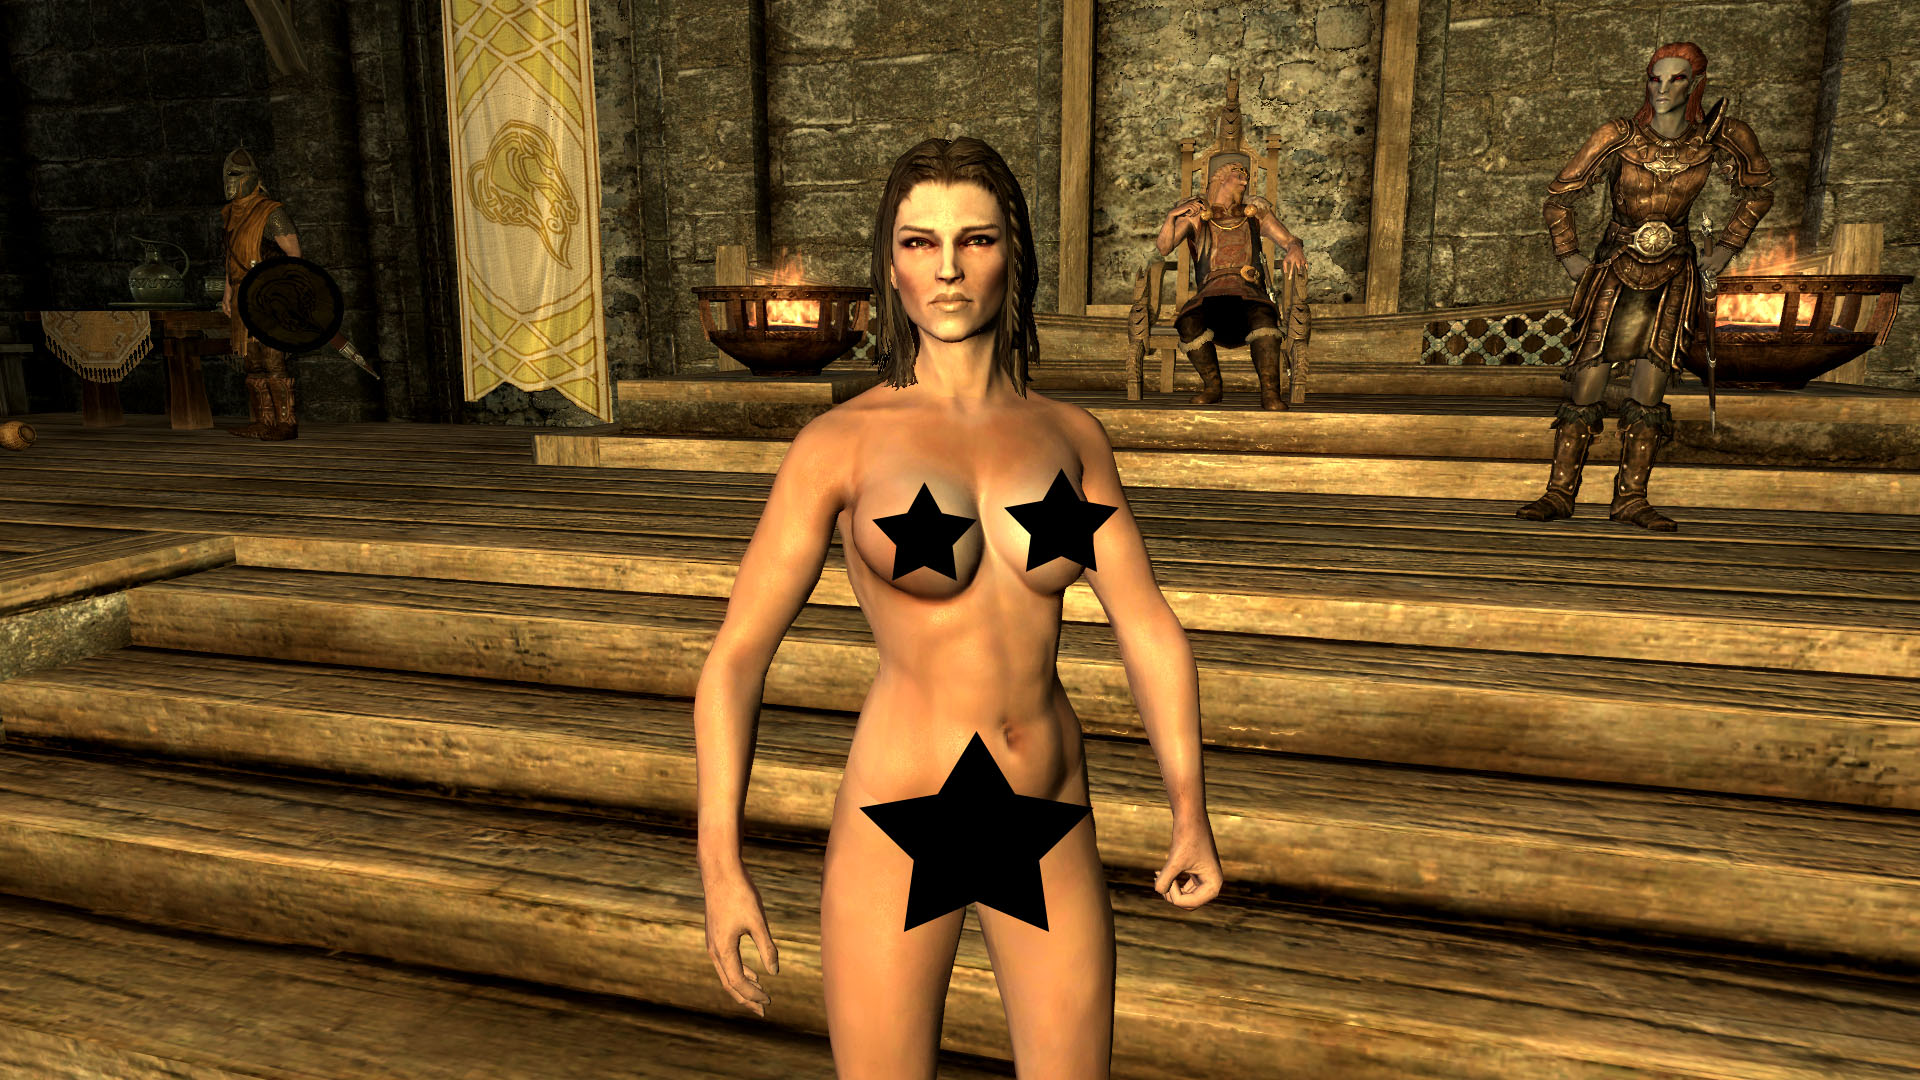 The elder scrolls death nude exposed image